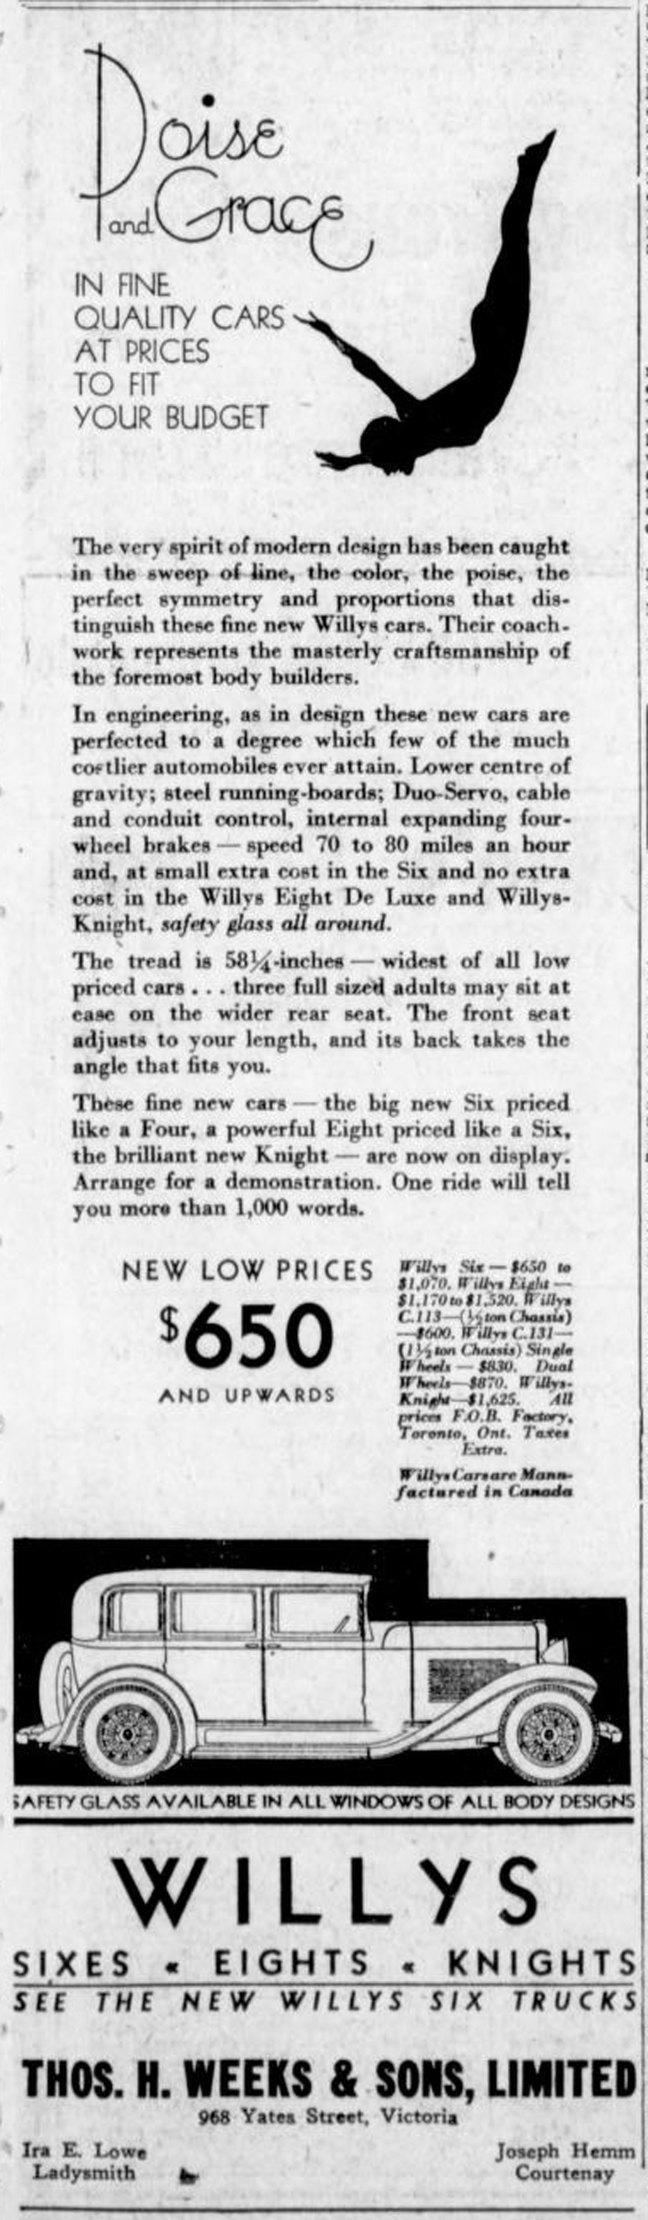 1931 advertisement for Willys cars and trucks which mentions Ira E. Lowe, the Willys dealer for Ladysmith. Ira E. Lowe was a member of St. John's Lodge No. 21 (St. John's Lodge No. 21 Historian collection)